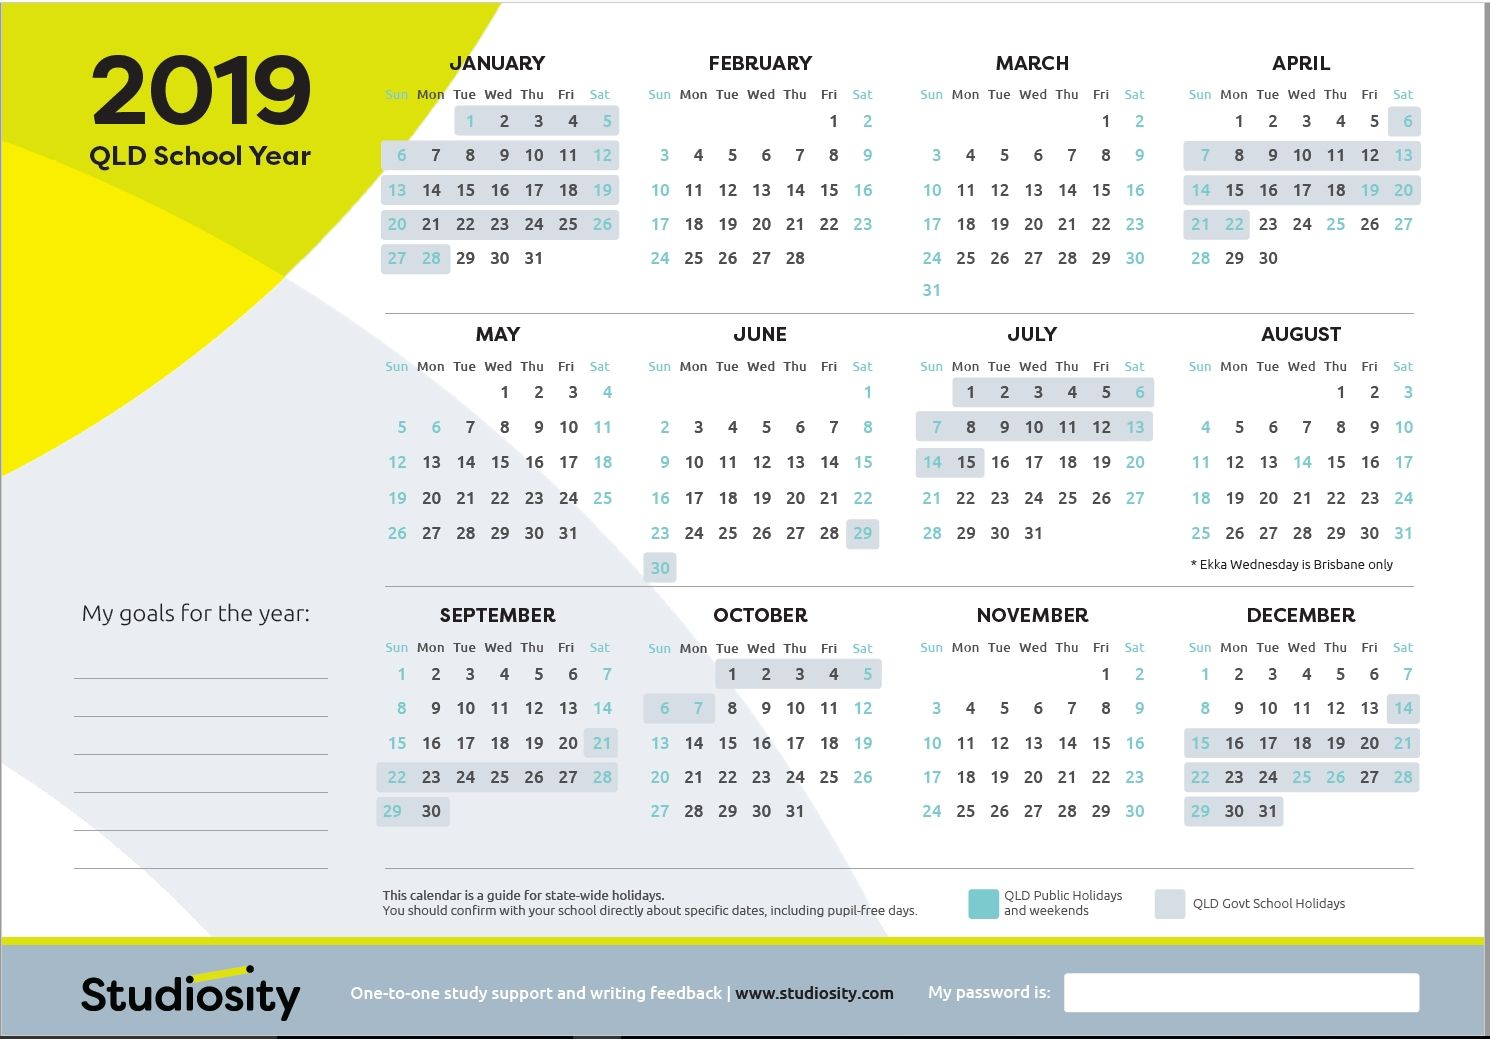 Pick School Holiday Calendar 2019 Qld Calendar 2019 School